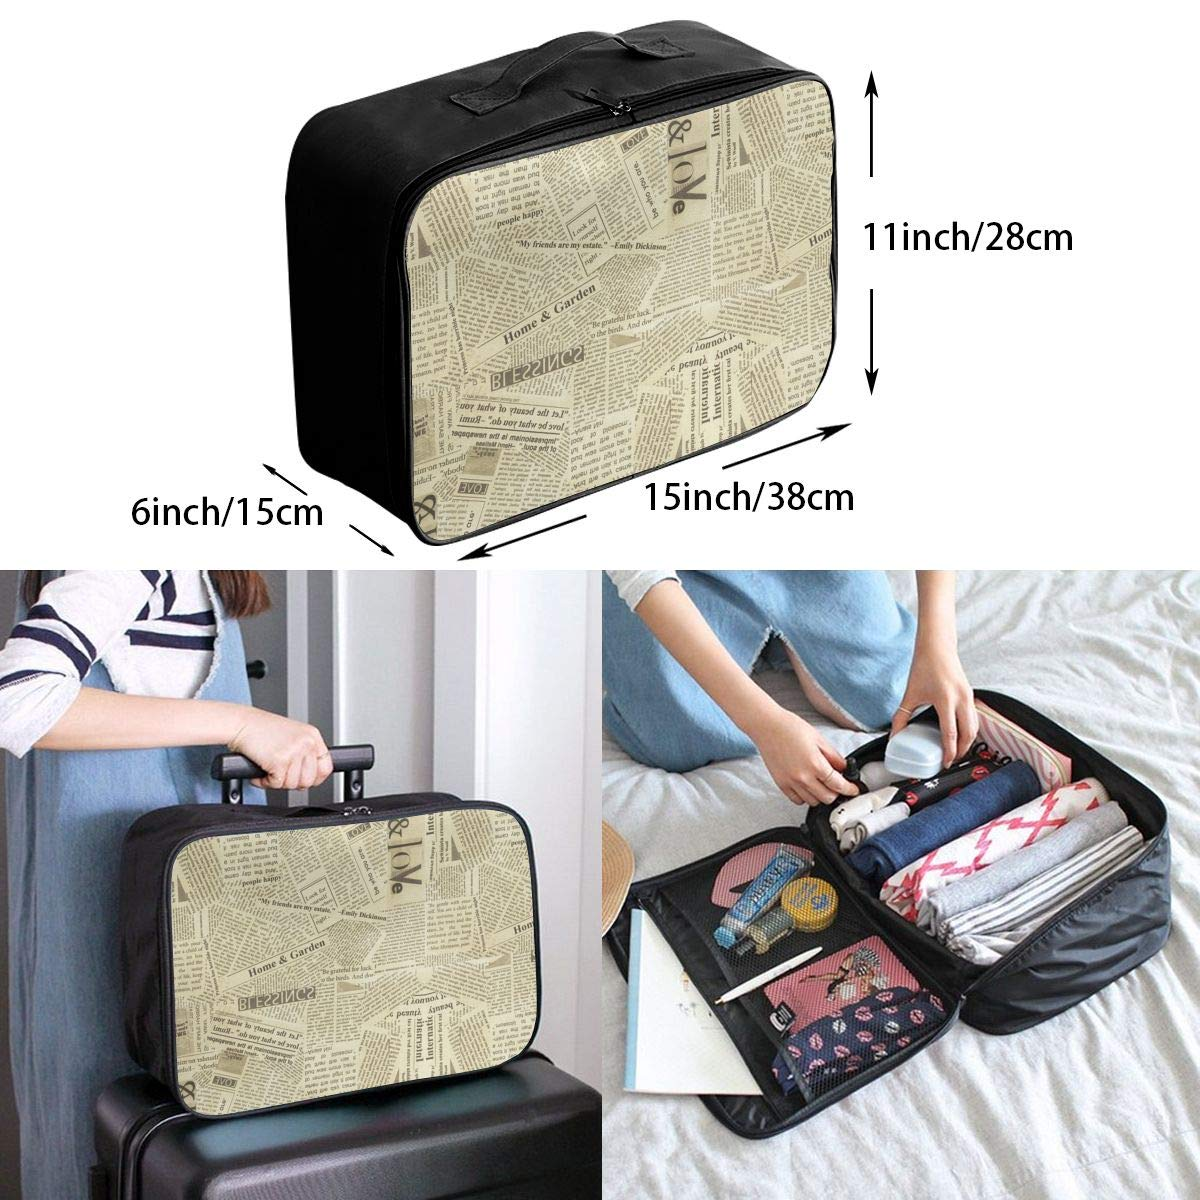 YueLJB Retro Newspaper Lightweight Large Capacity Portable Luggage Bag Travel Duffel Bag Storage Carry Luggage Duffle Tote Bag